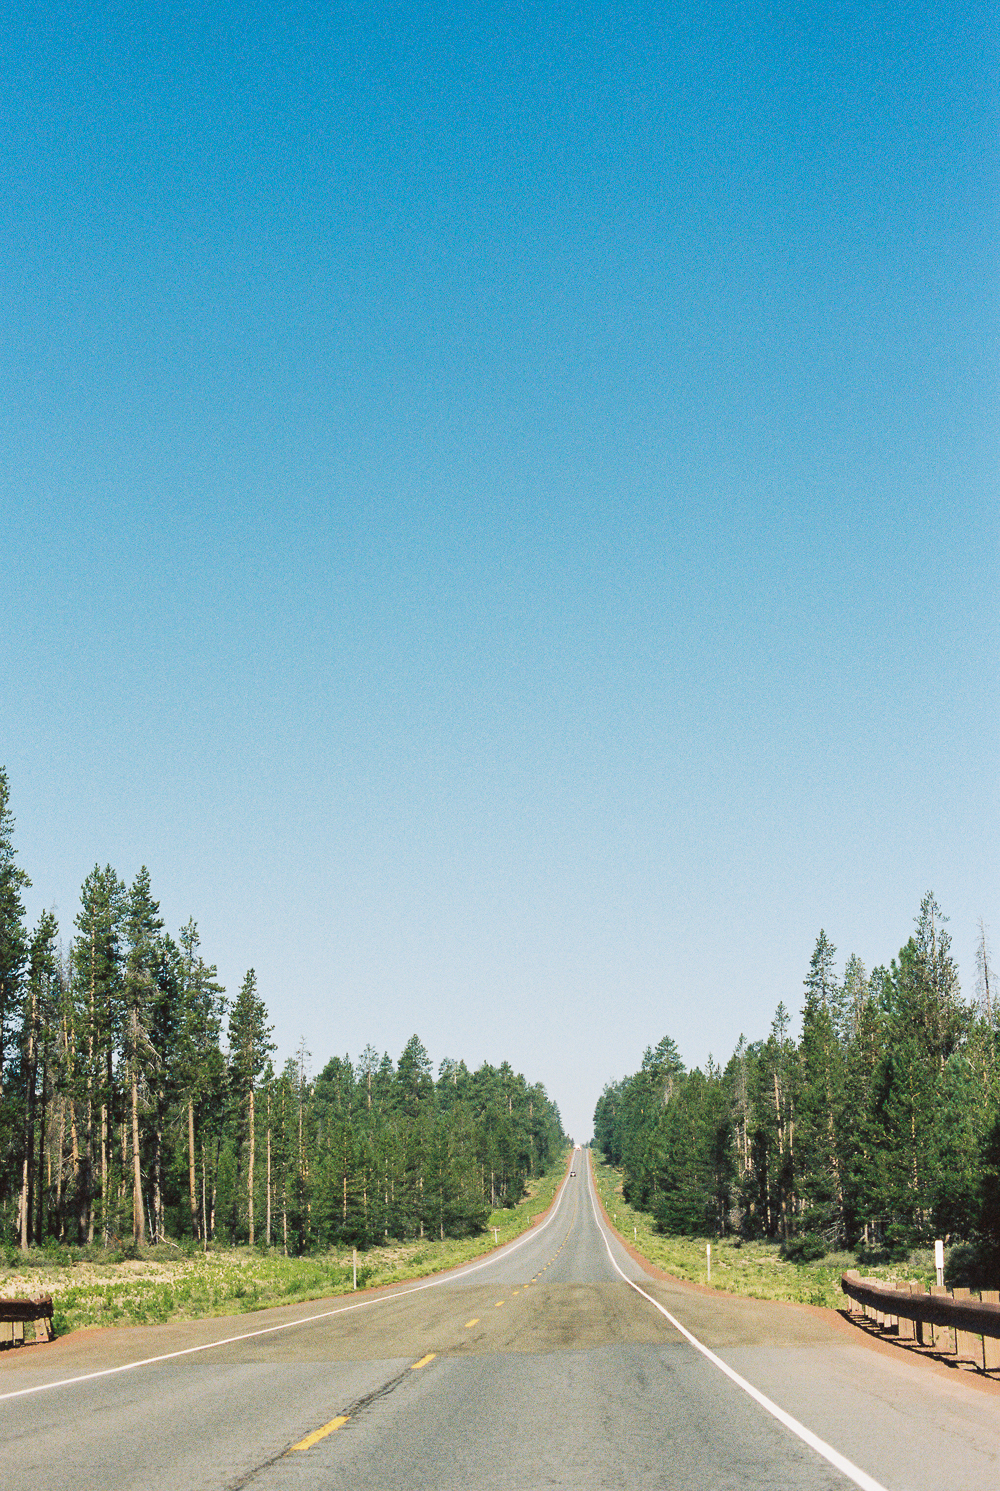 Road to Crater Lake - Portra 400 on Nikon N90s